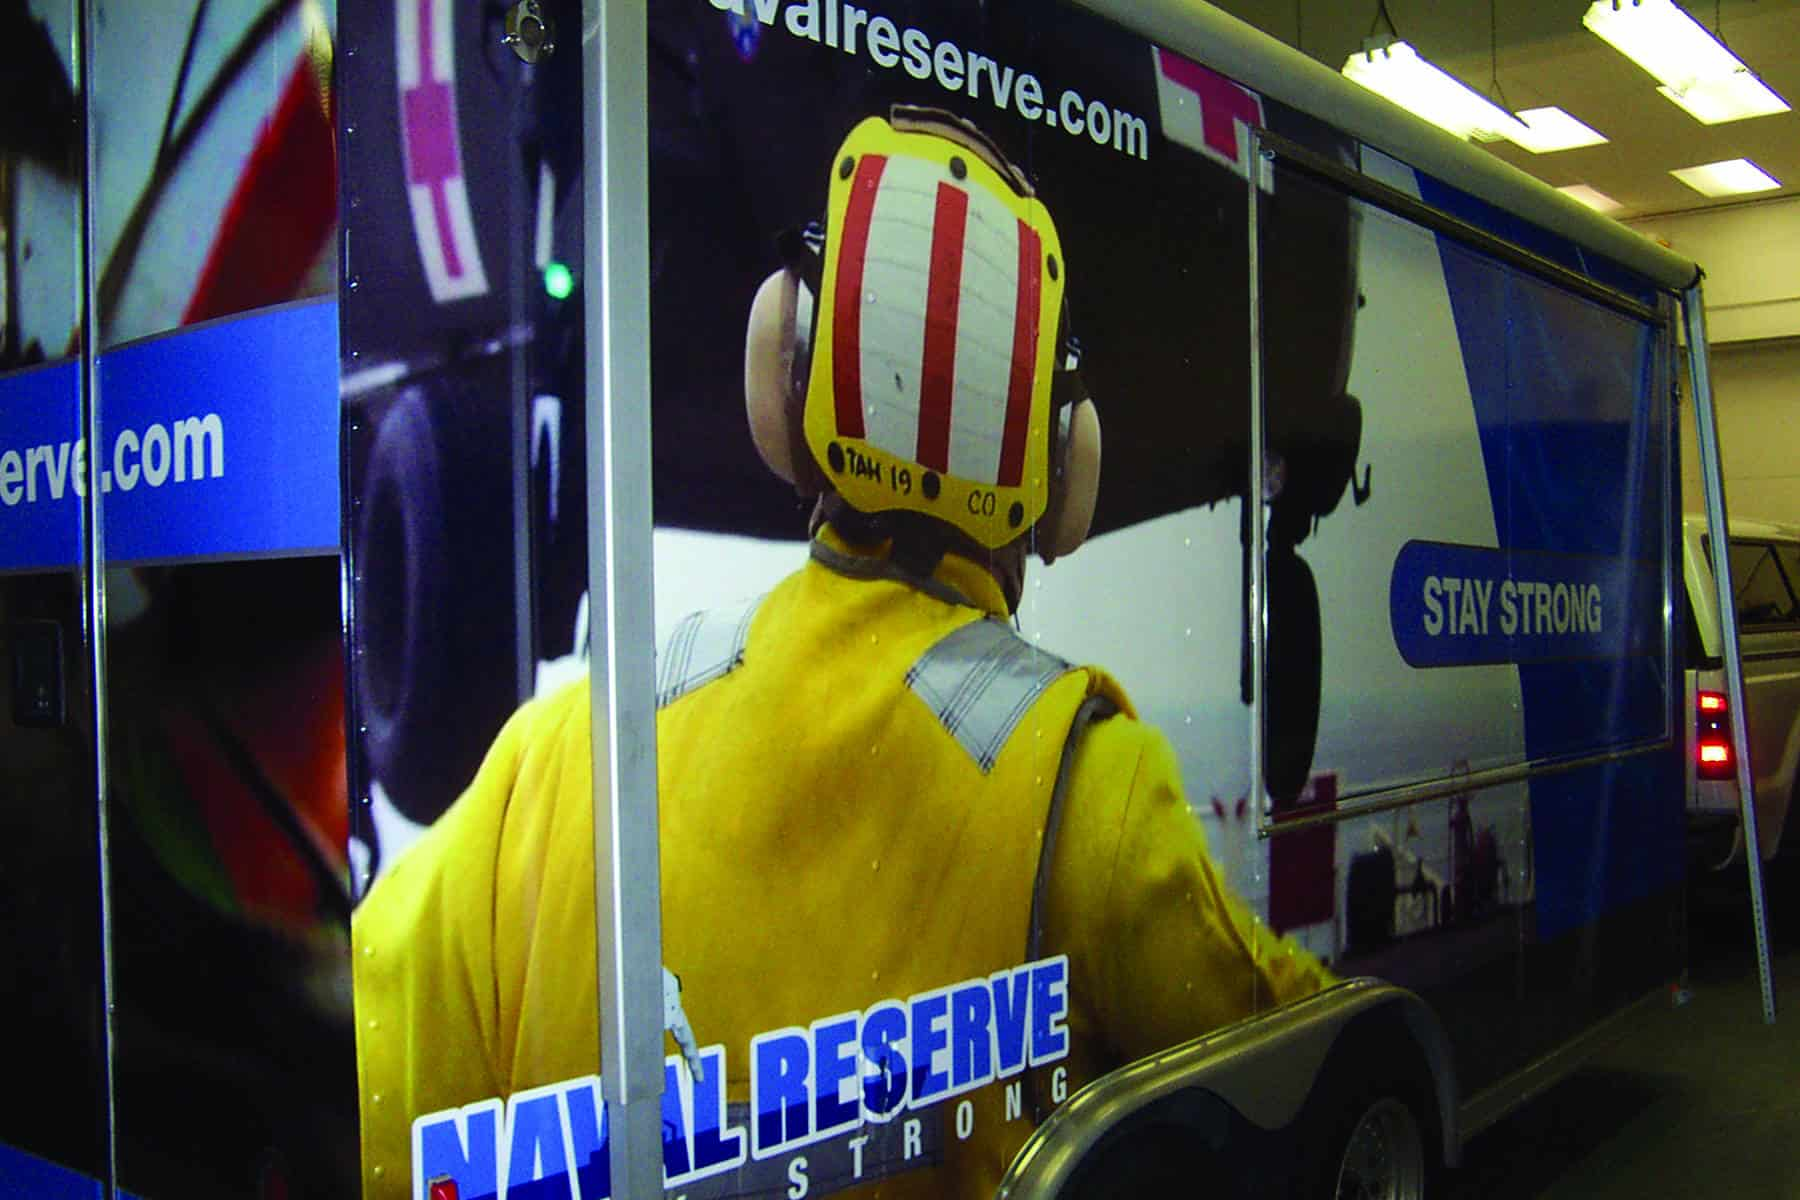 Air Reserve - Hired Platon Graphics to do their outdoor advertising